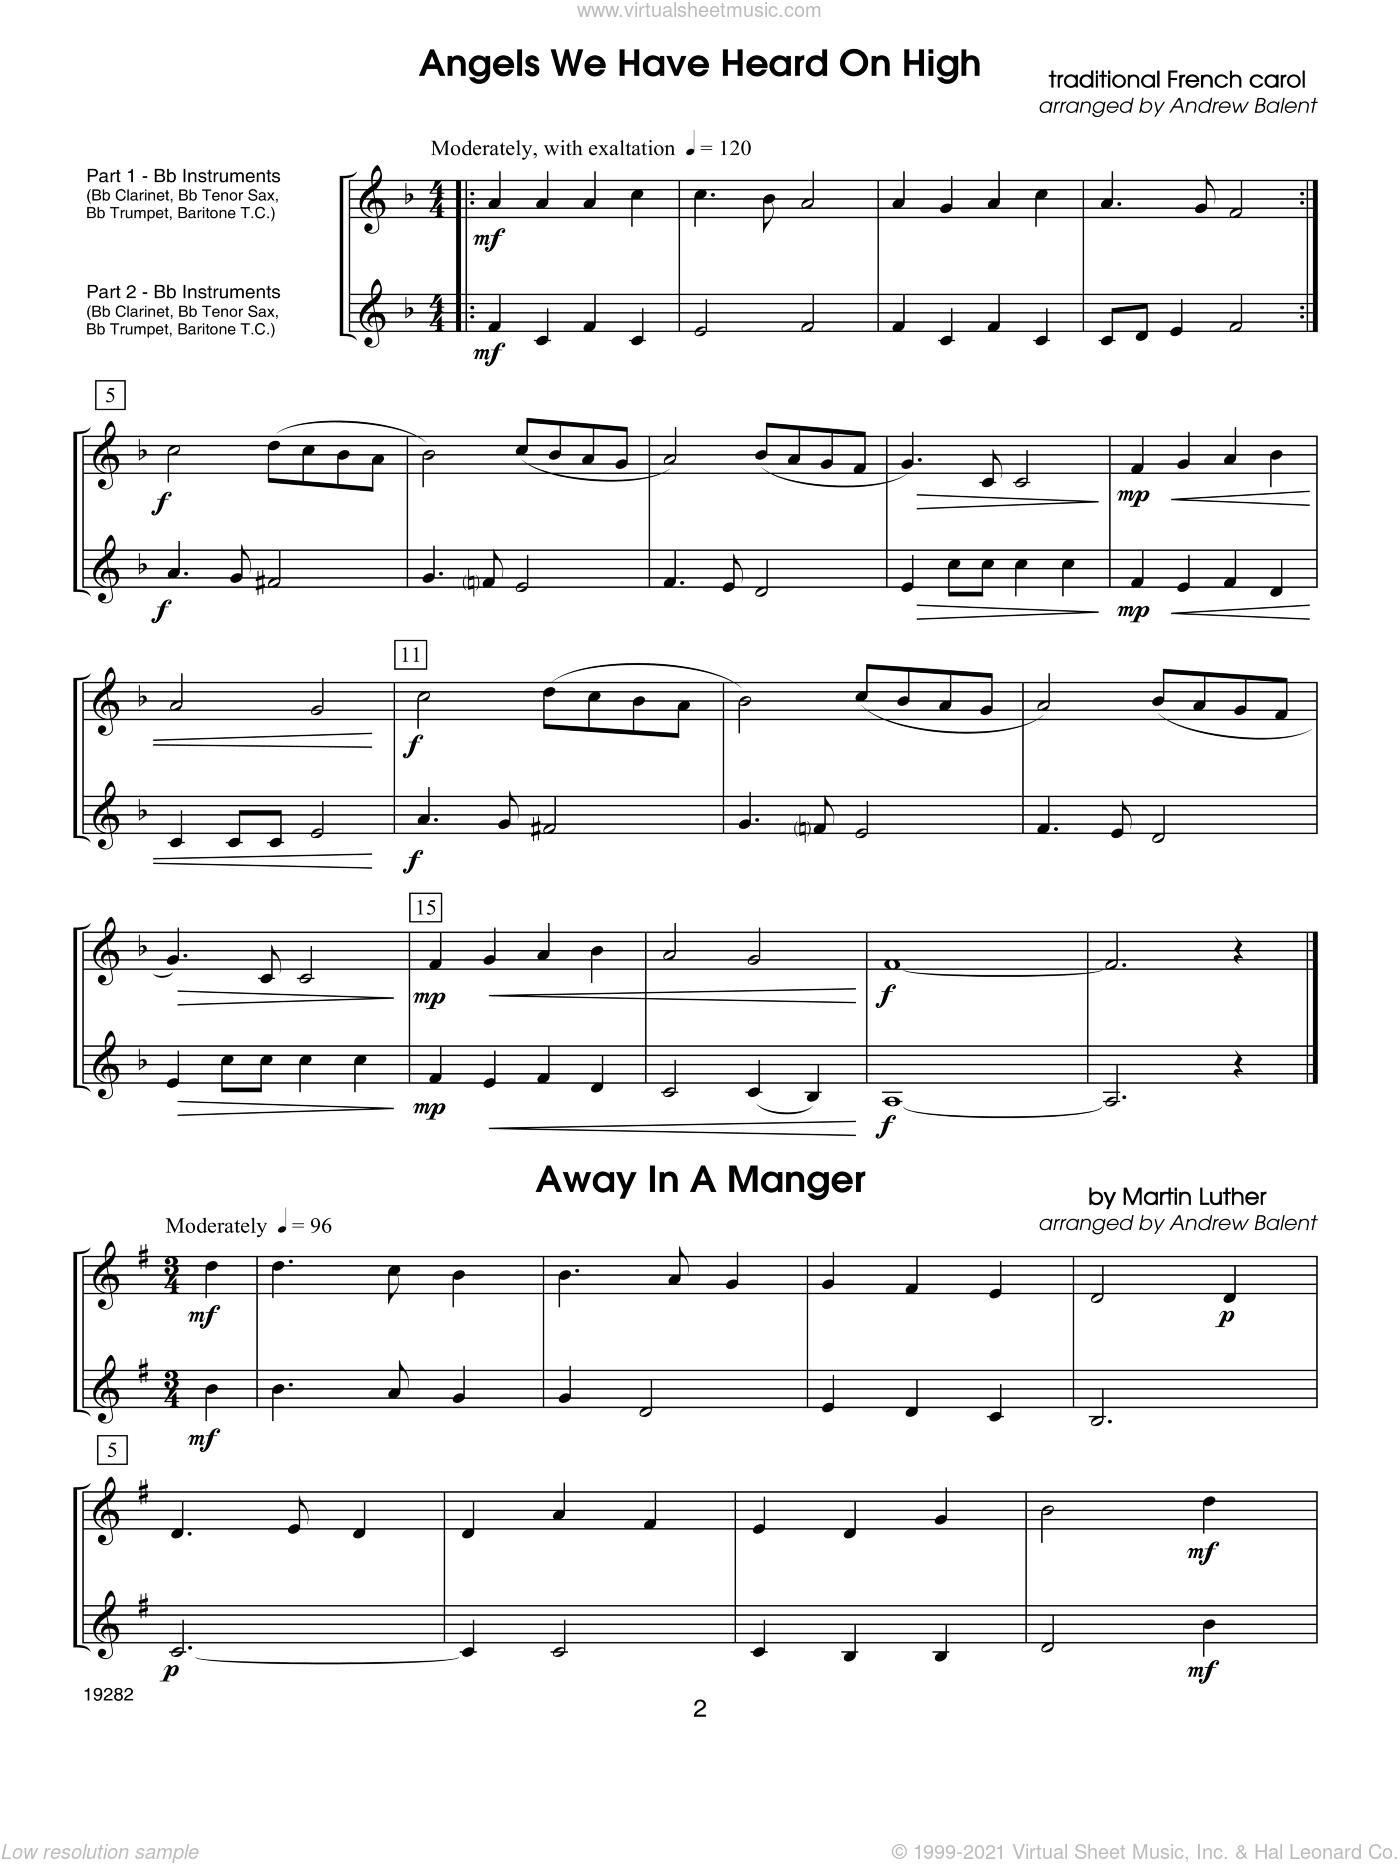 Christmas FlexDuets sheet music for two trumpets or clarinets by Balent. Score Image Preview.